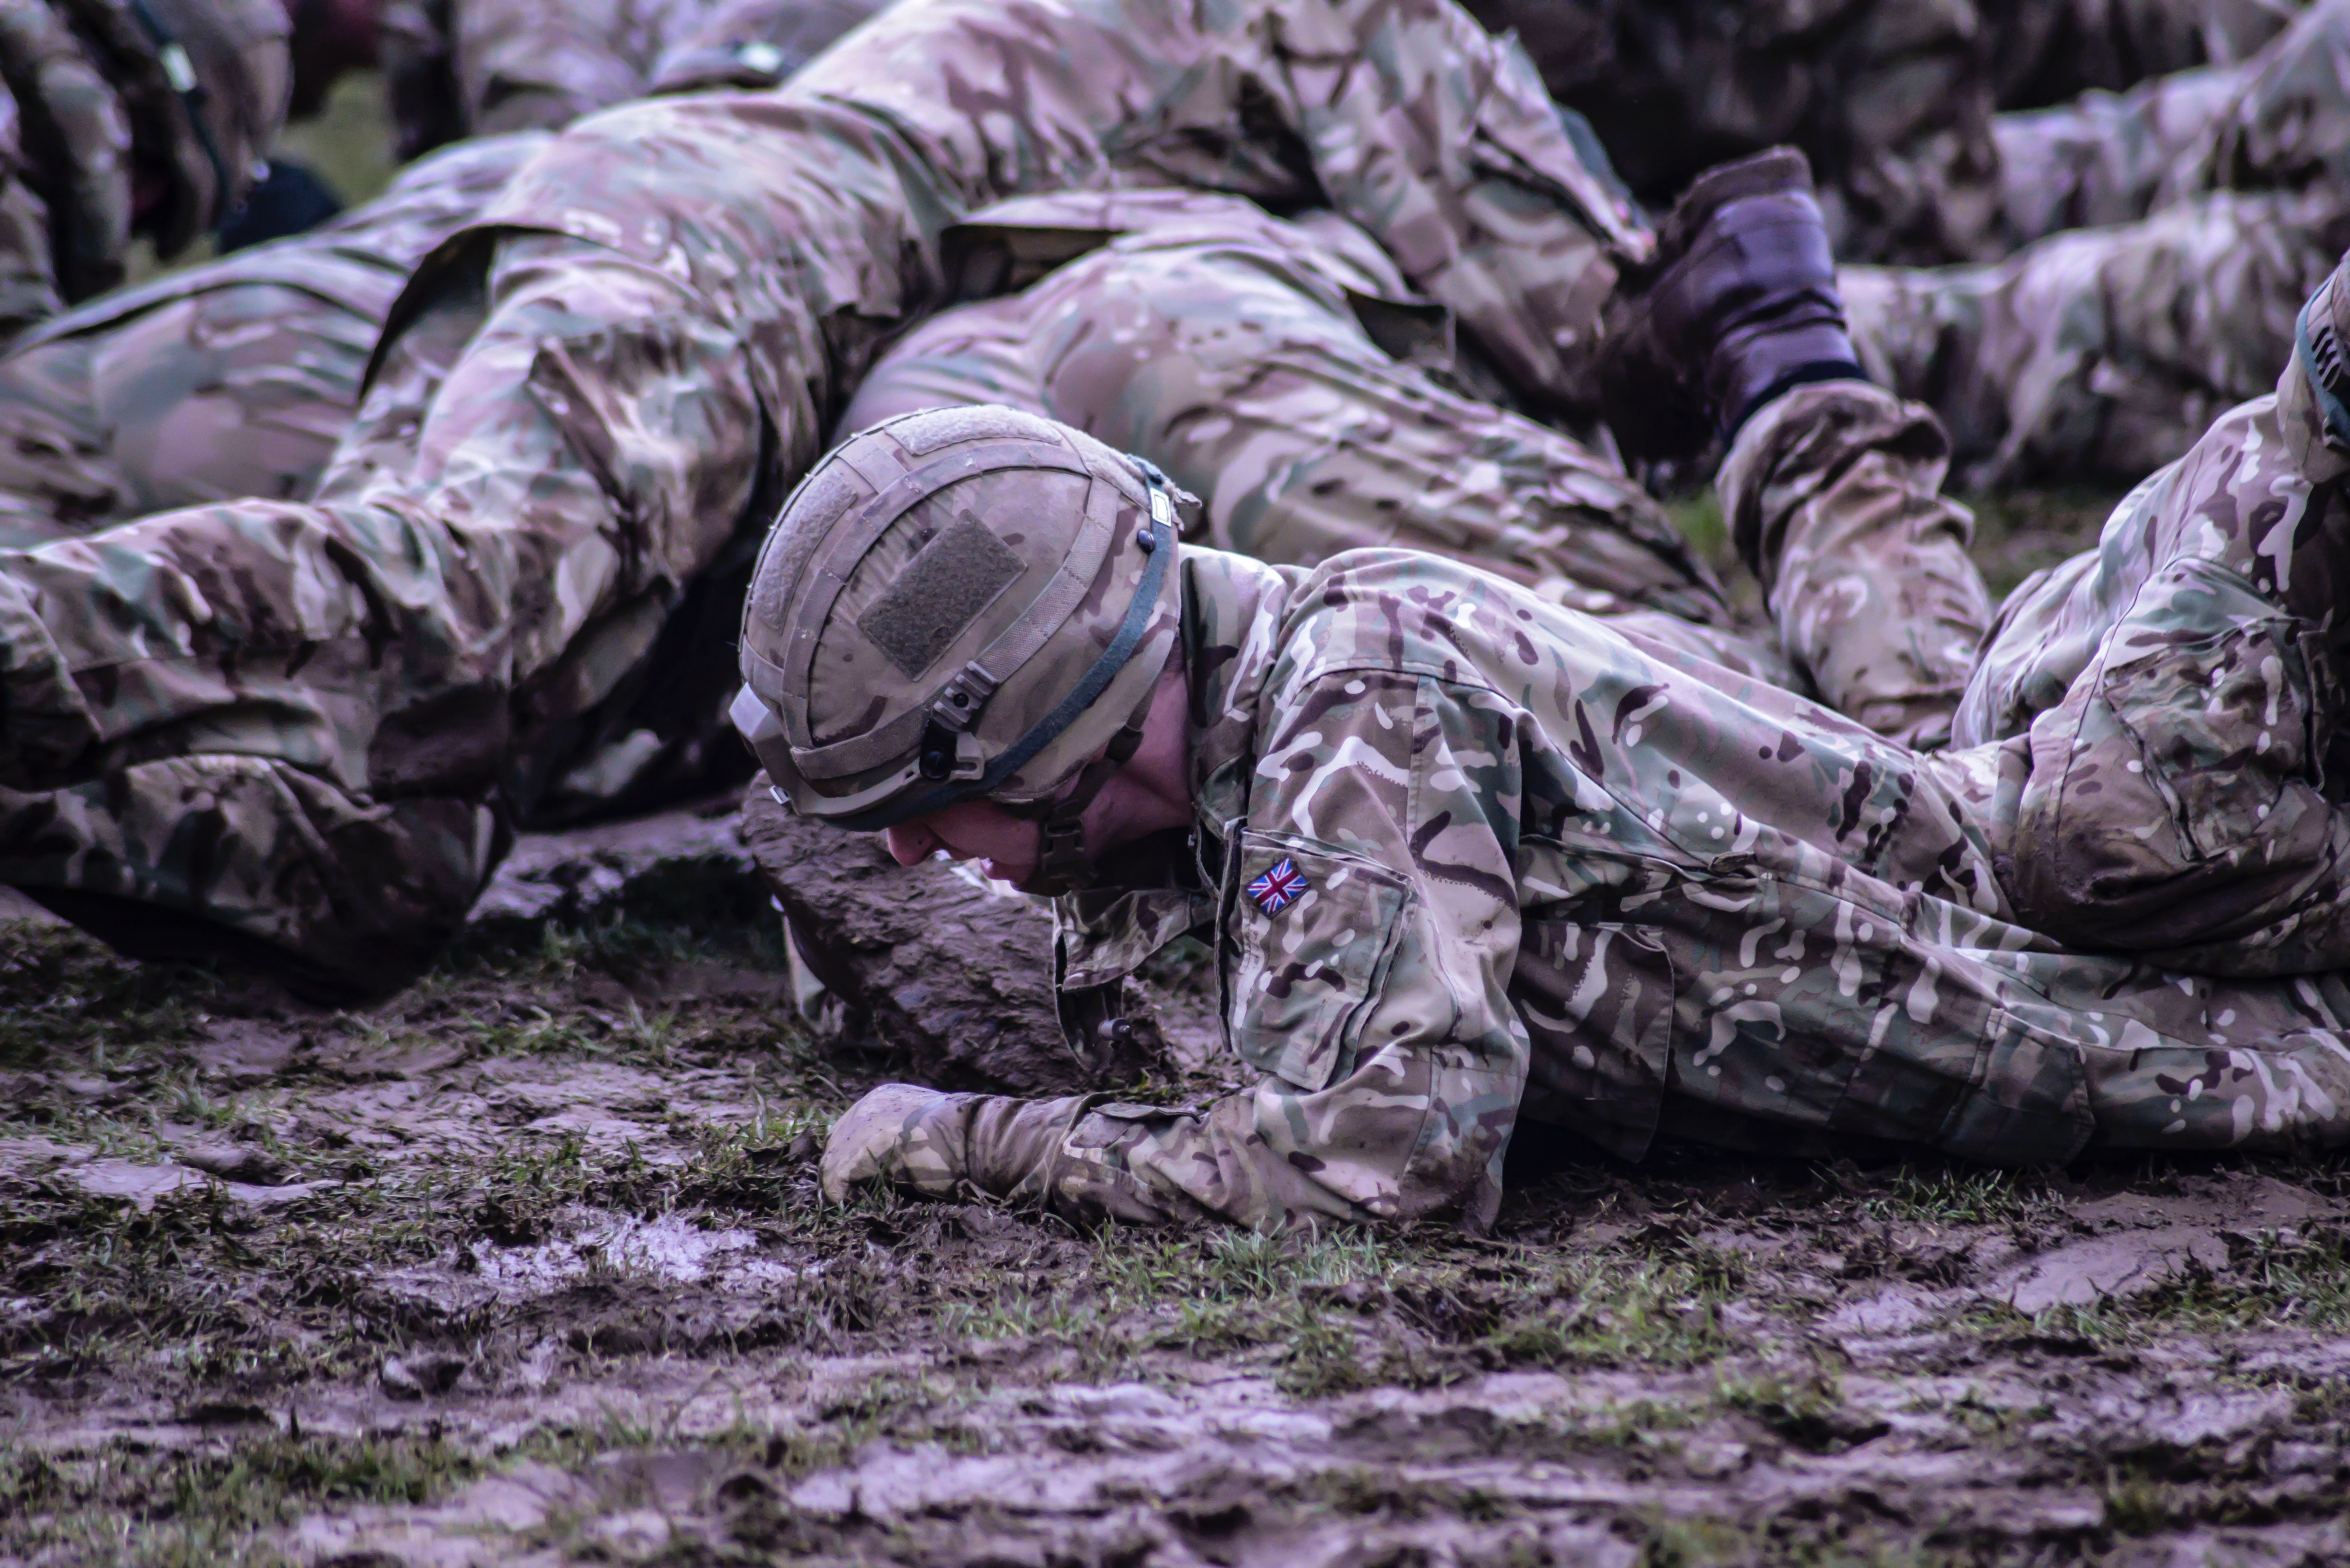 Group of soldiers crawling on mud photo